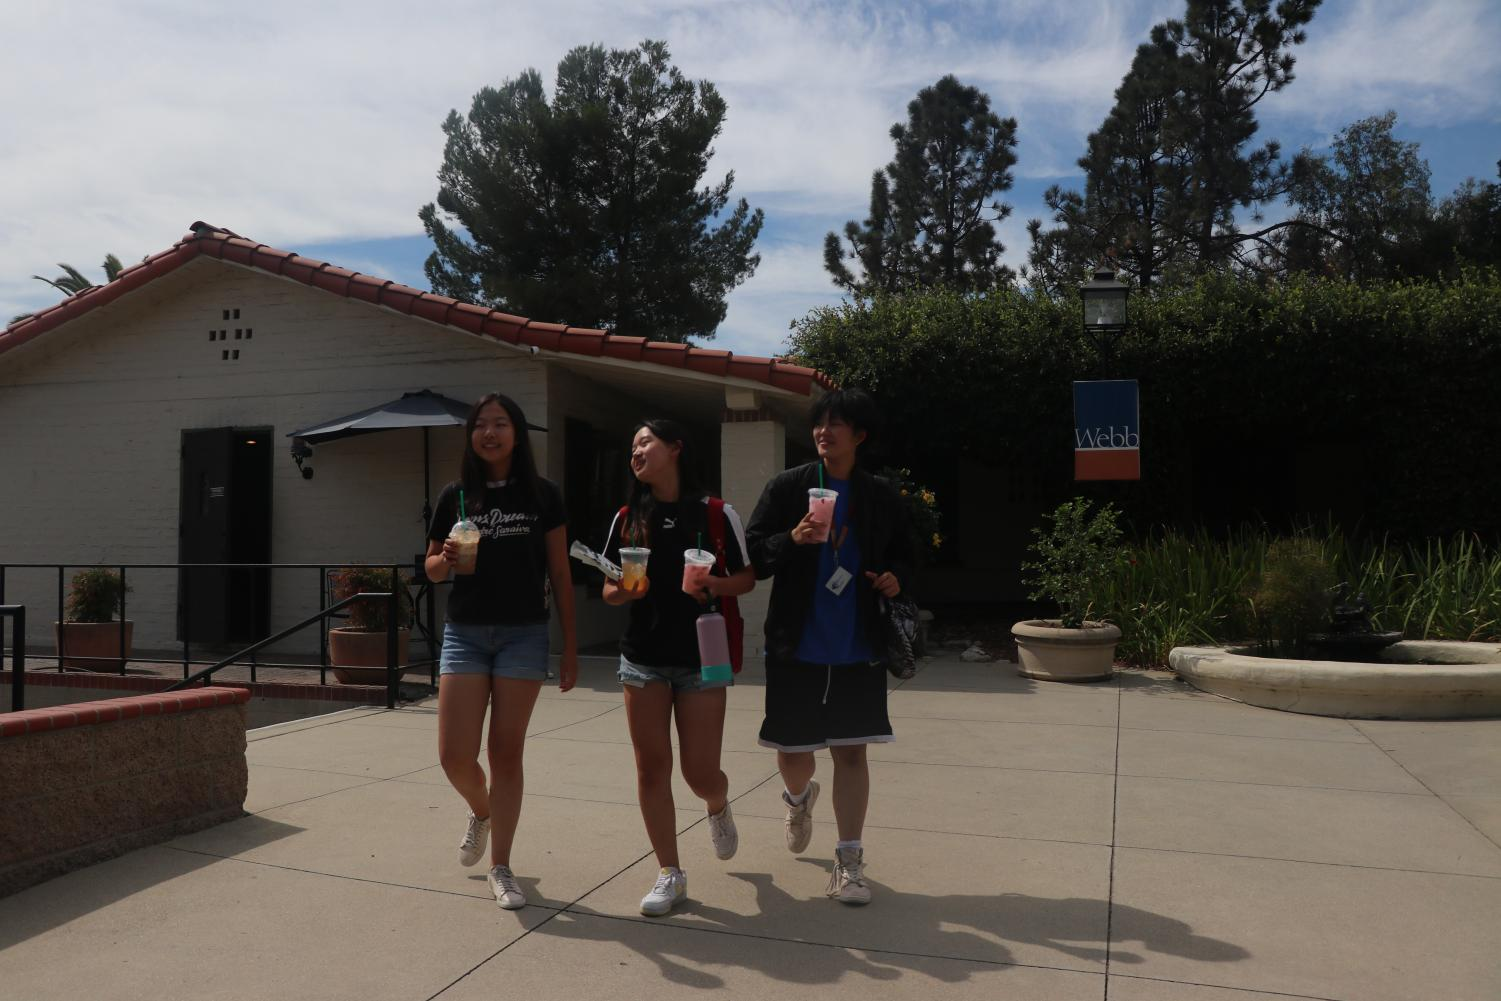 After a mid-week Target run, Fiona Jiang ('22), Jojo Jiang ('22) and Brandy Zhang ('22) walk around campus holding Starbucks drinks.